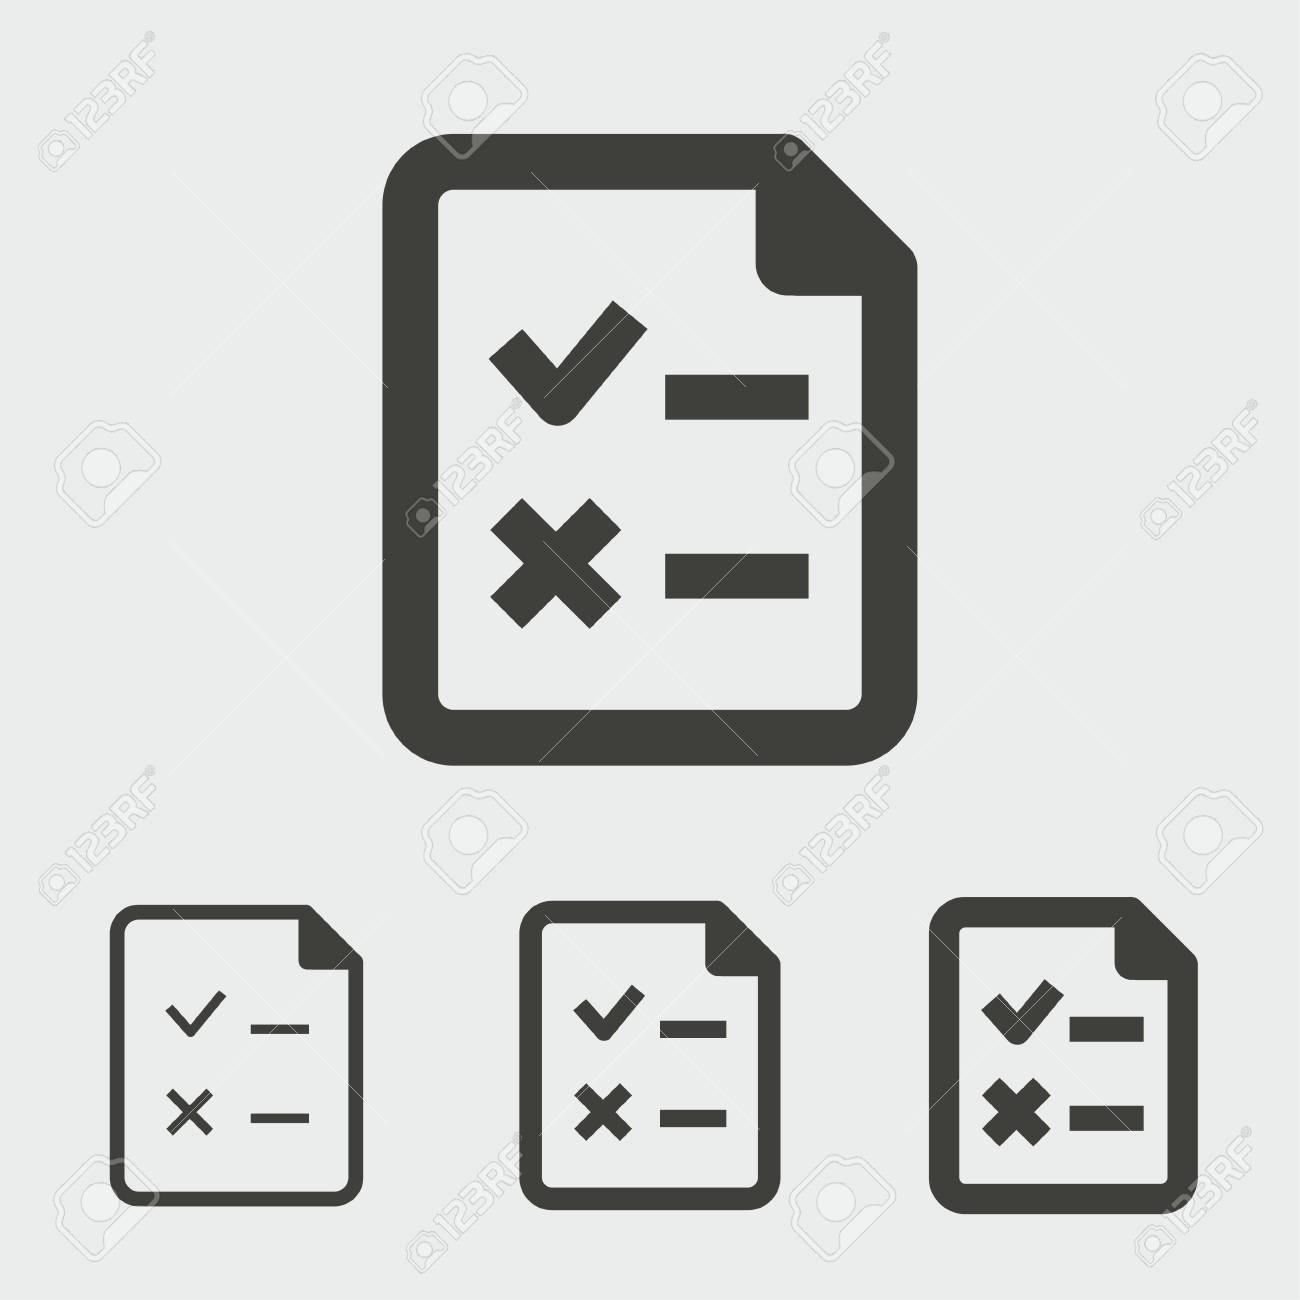 Survey vector icon. Black illustration isolated for graphic and web design. - 114807491